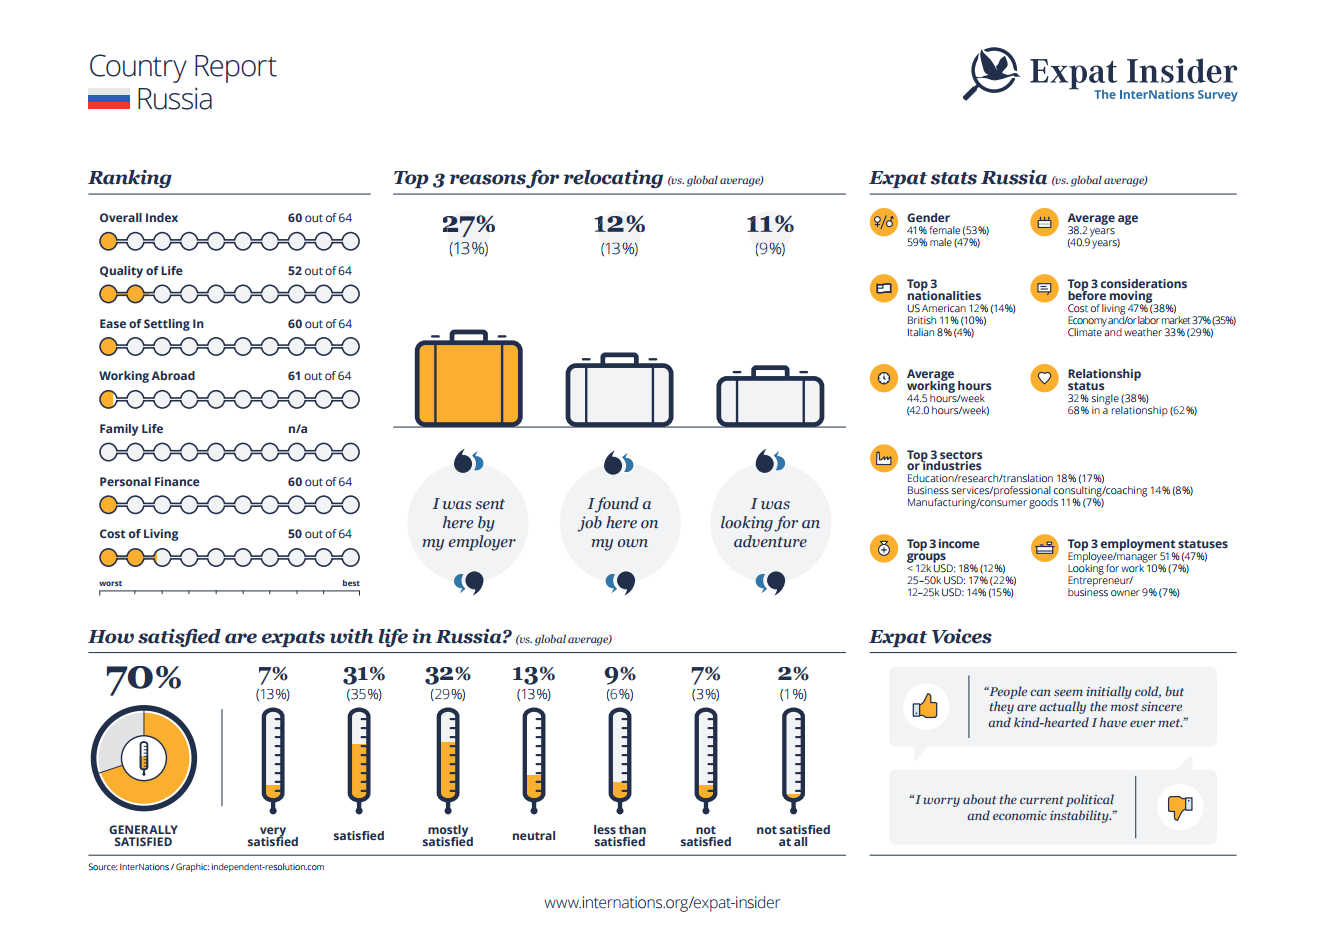 Expat statistics for Russia - infographic